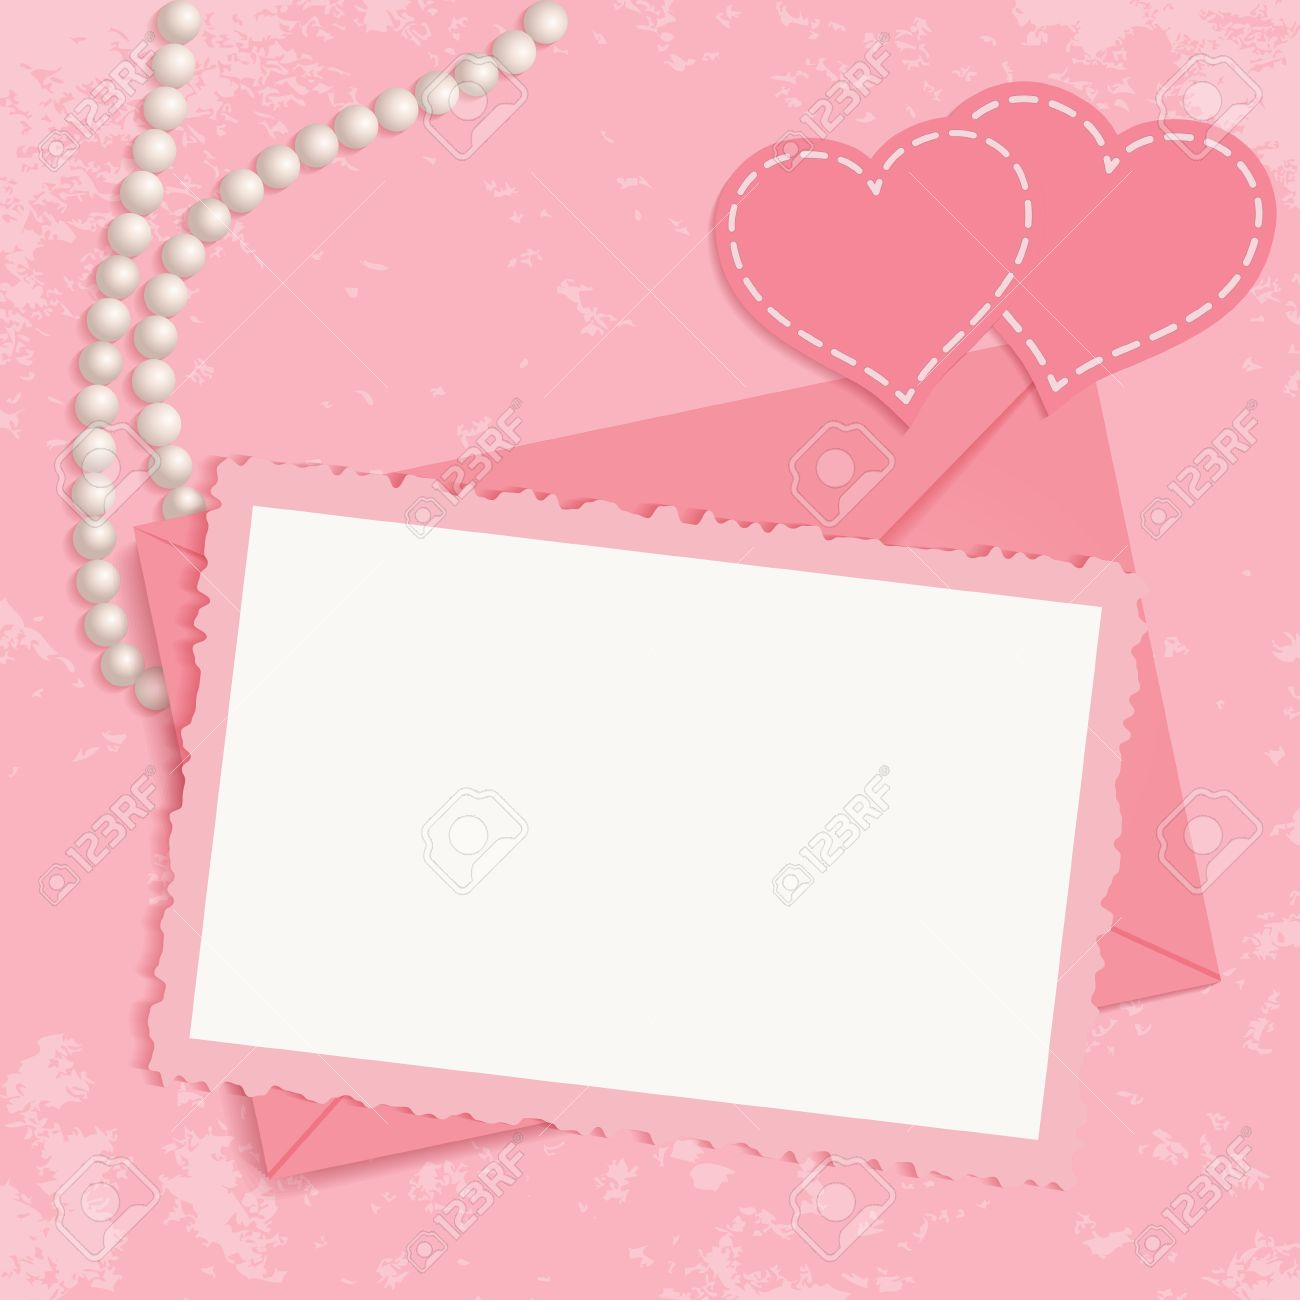 Retro pink framework for invitation or congratulation  Pearls, framework, envelope and hearts on pink grunge background  You can use frame for your text Stock Vector - 16968744